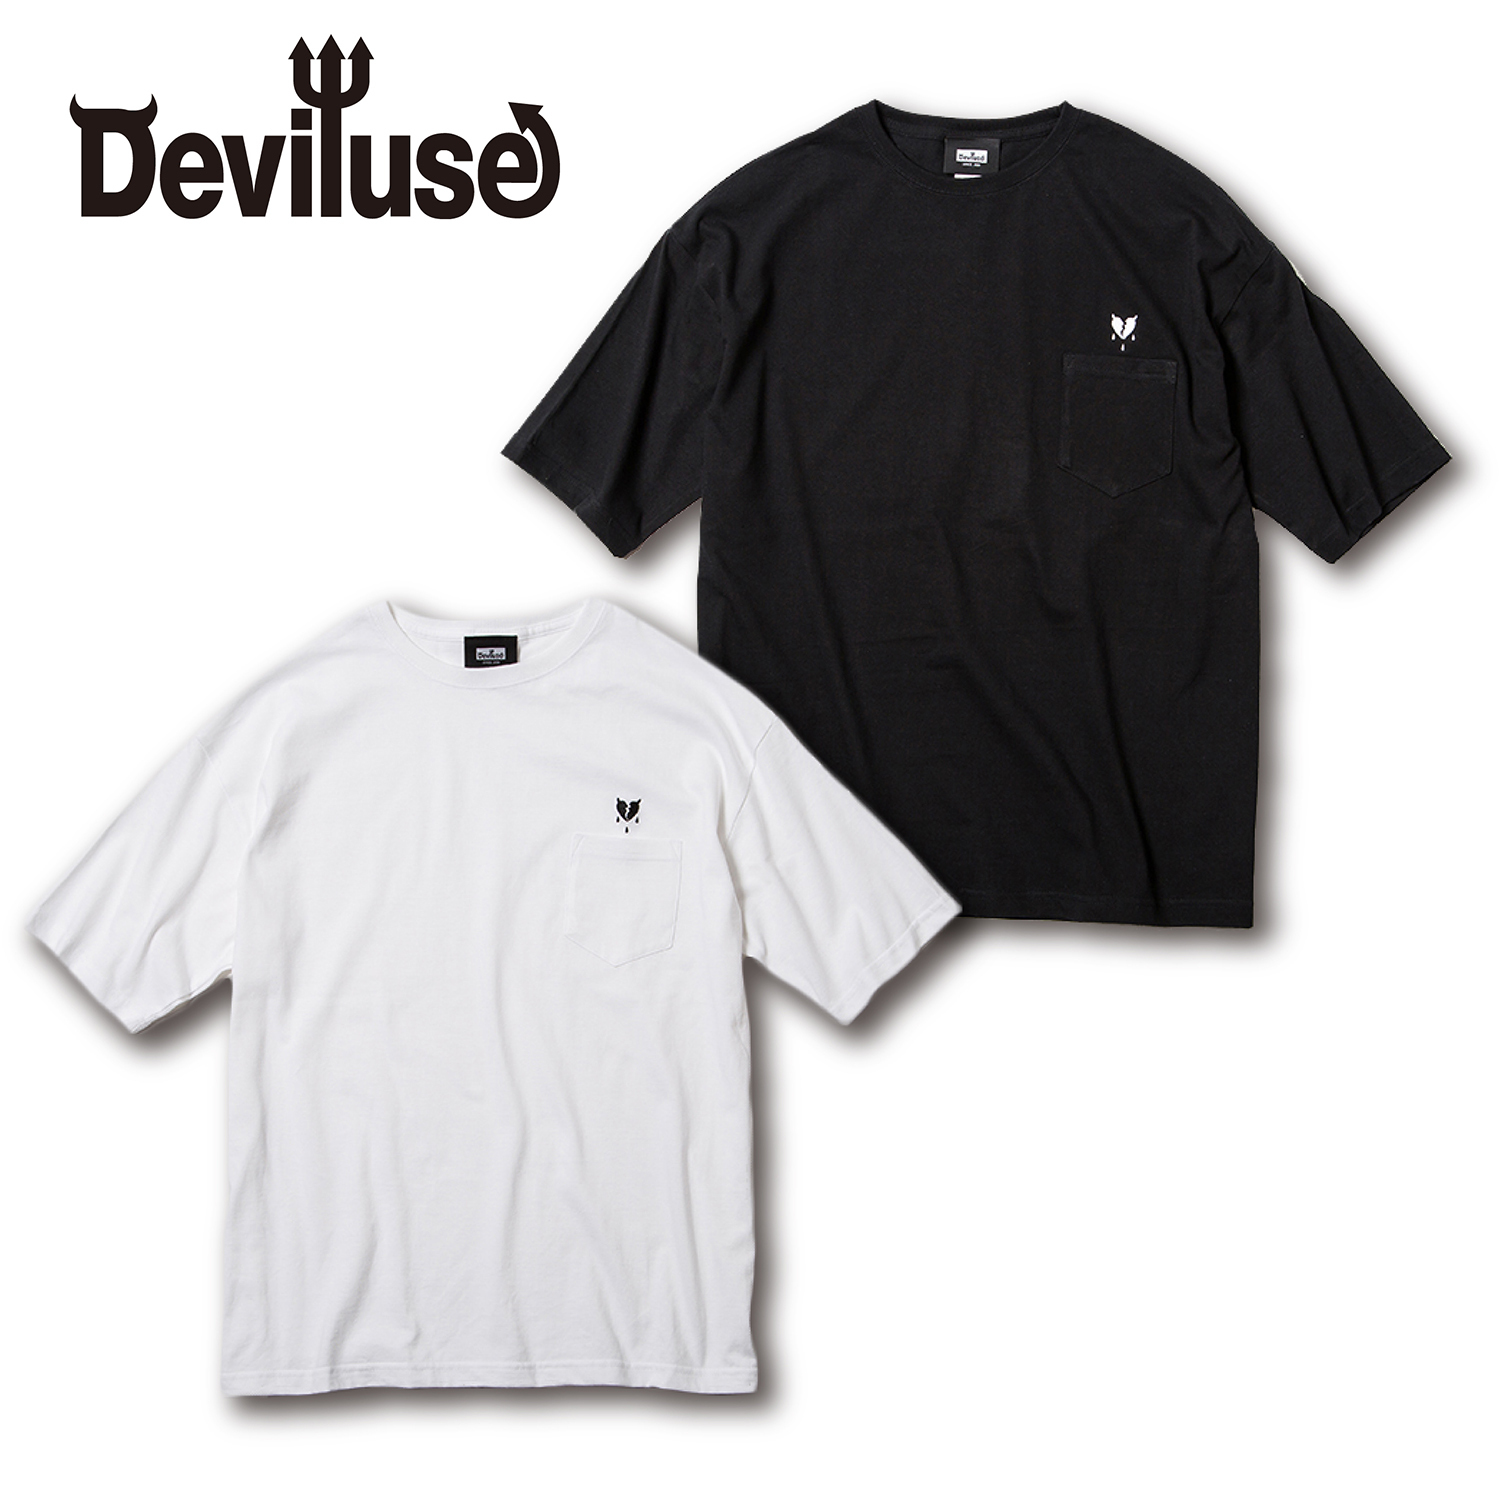 Deviluse(デビルユース) | Heartaches Pocket Big T-shirts